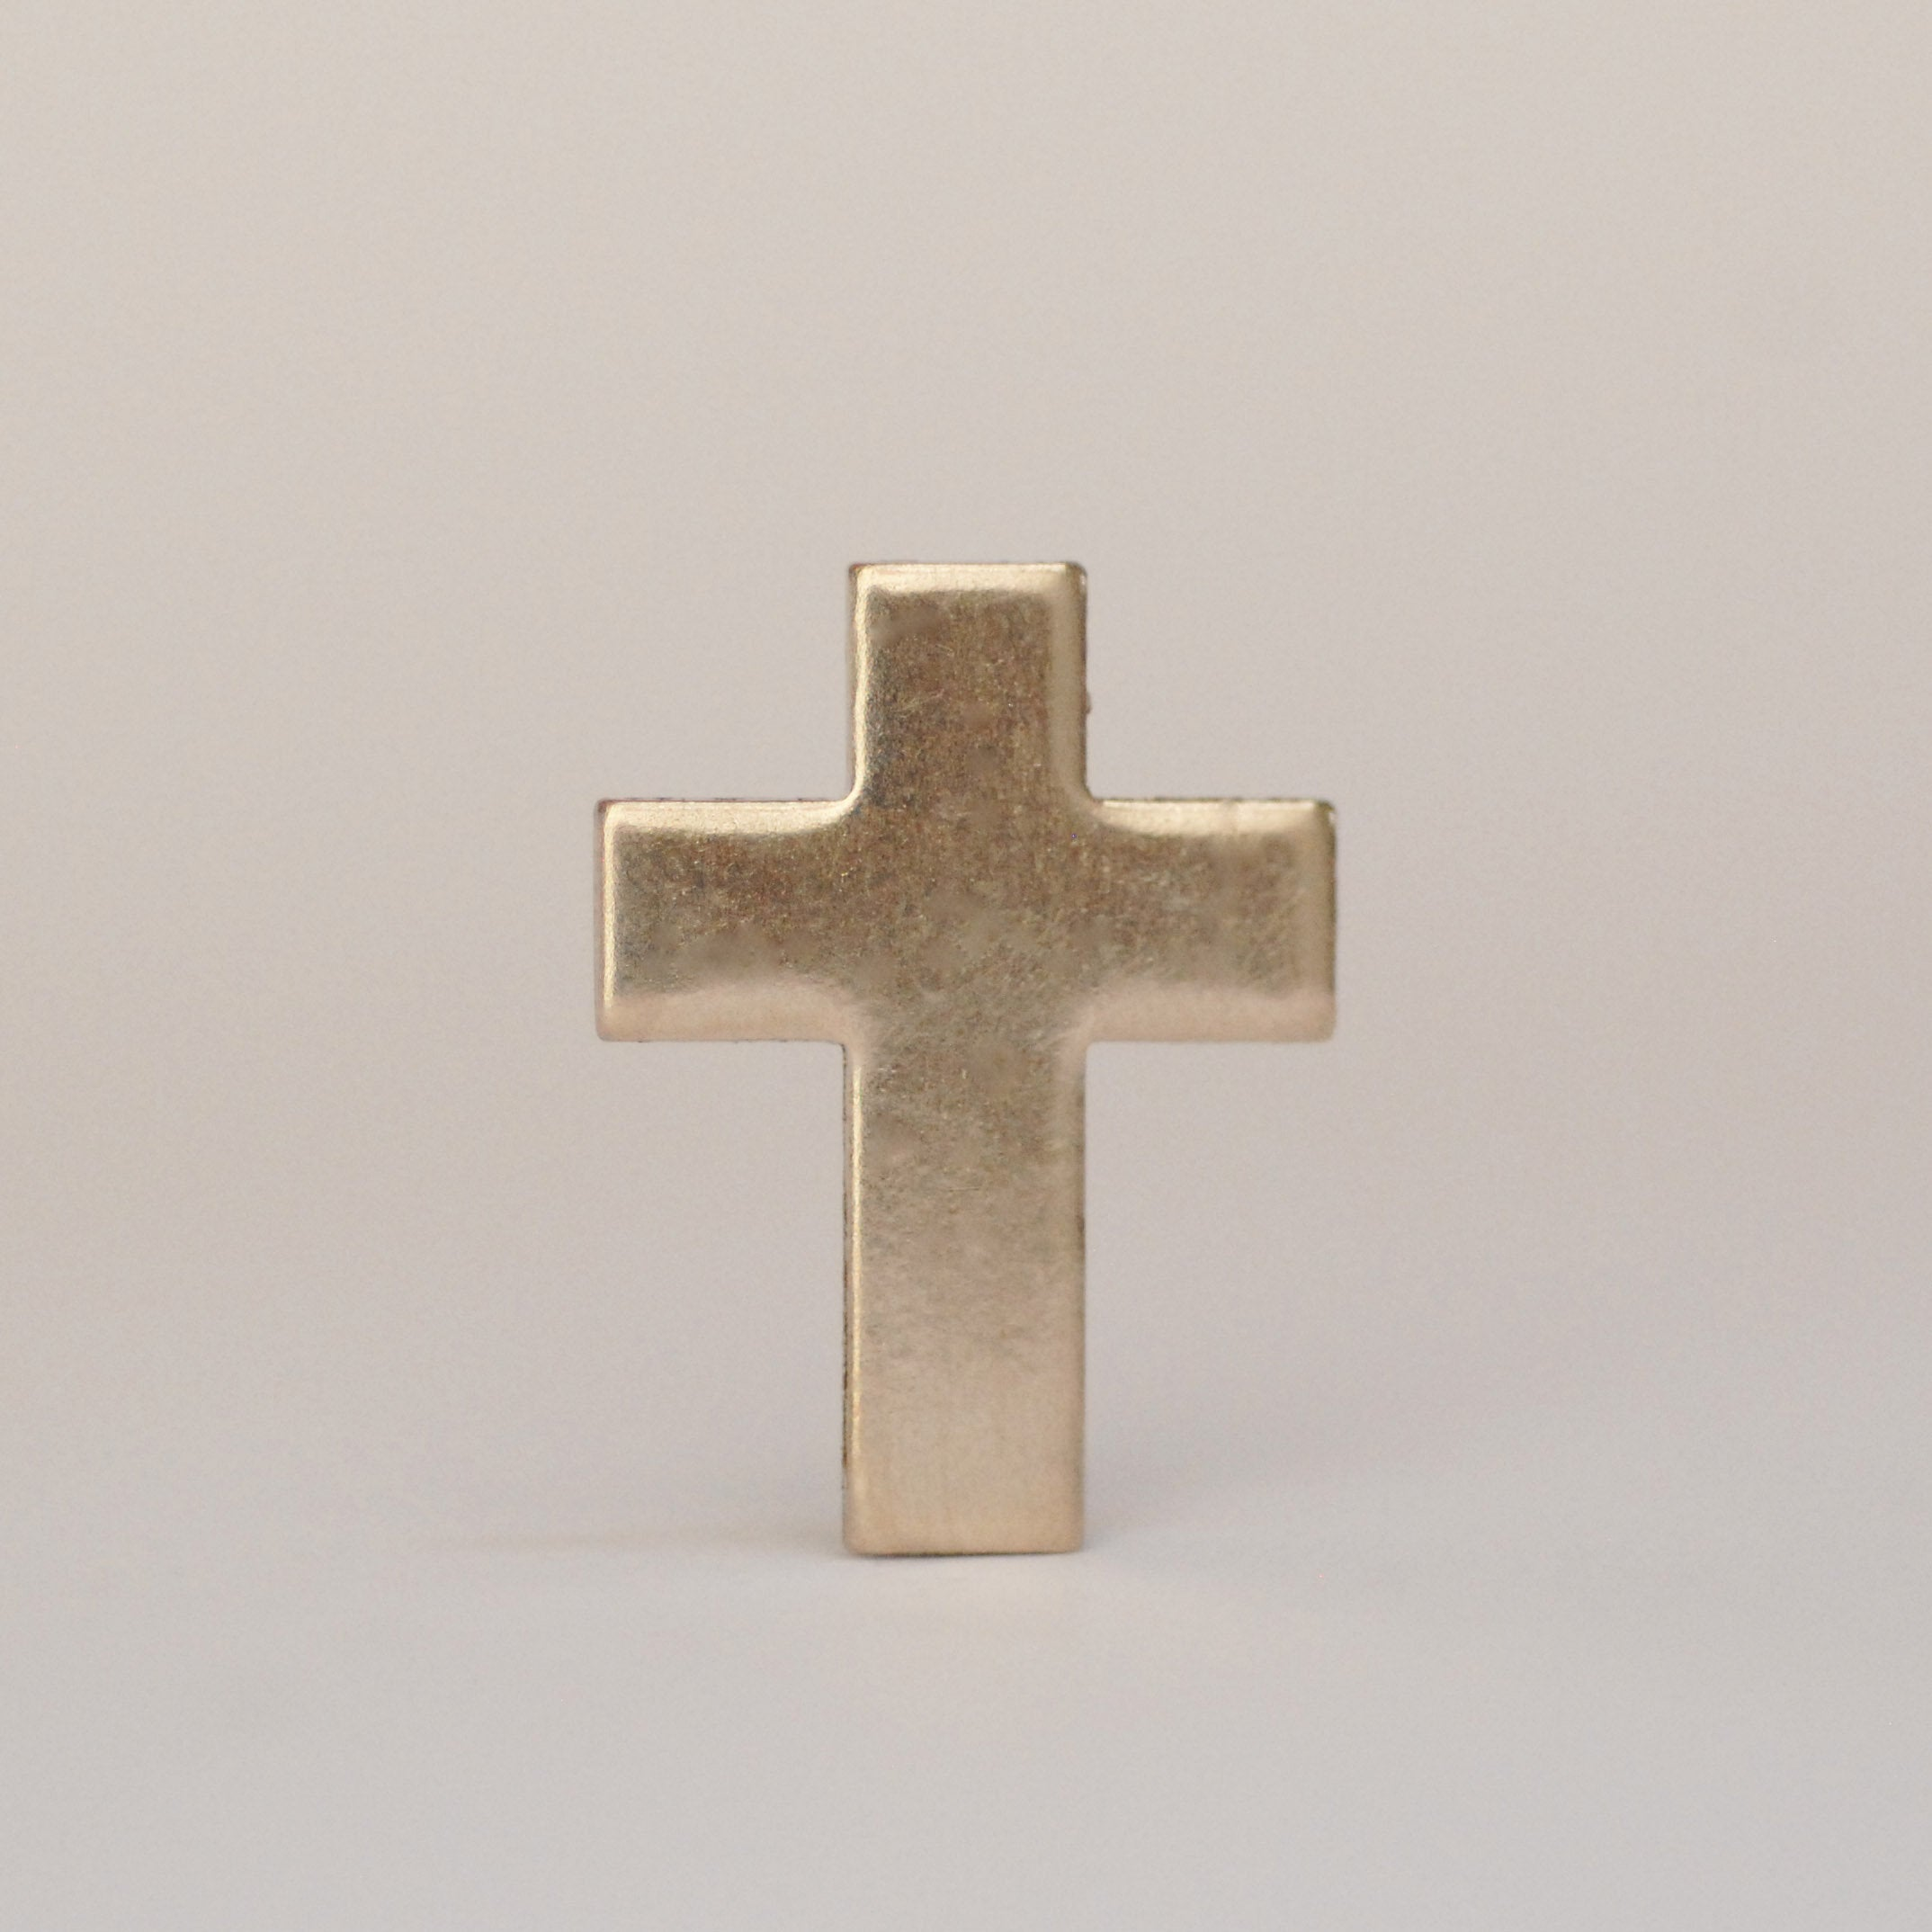 Simple Cross Shape metal blanks 18mm x 14mm for making jewelry, pendants and earrings